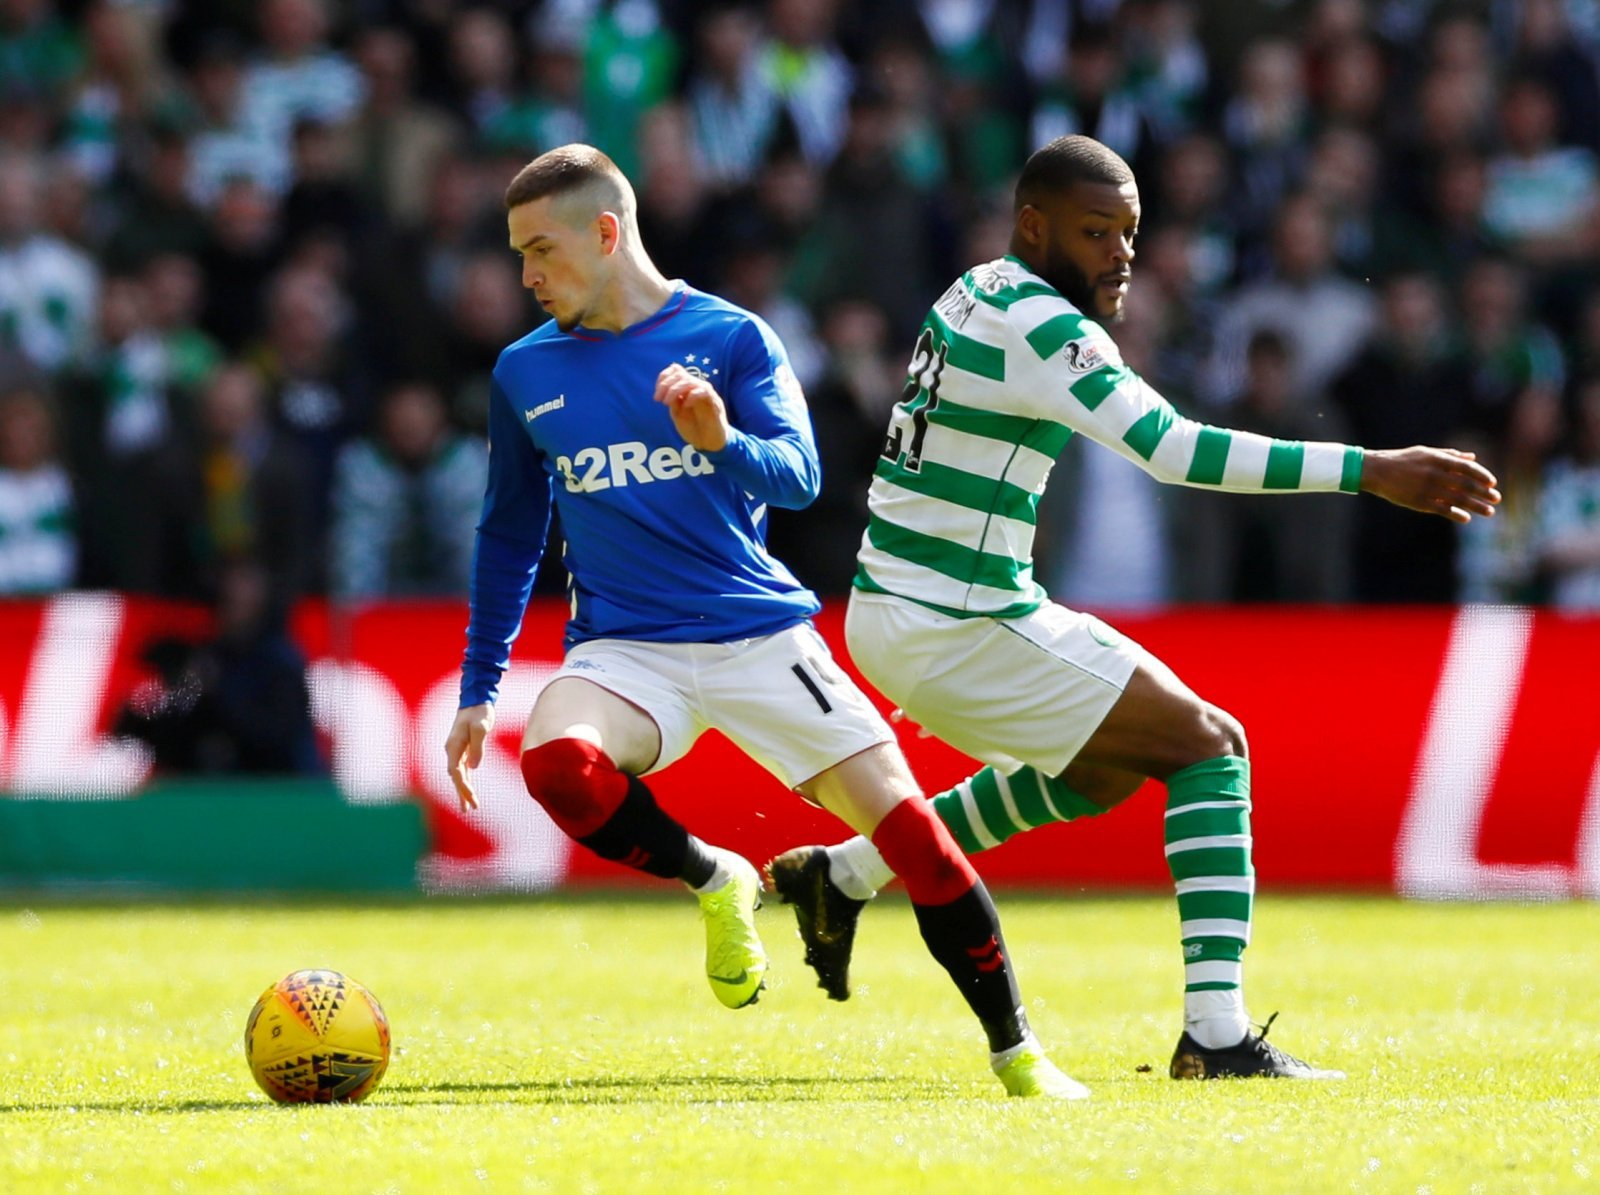 Unsung hero: Ryan Kent shows why Rangers must splash cash